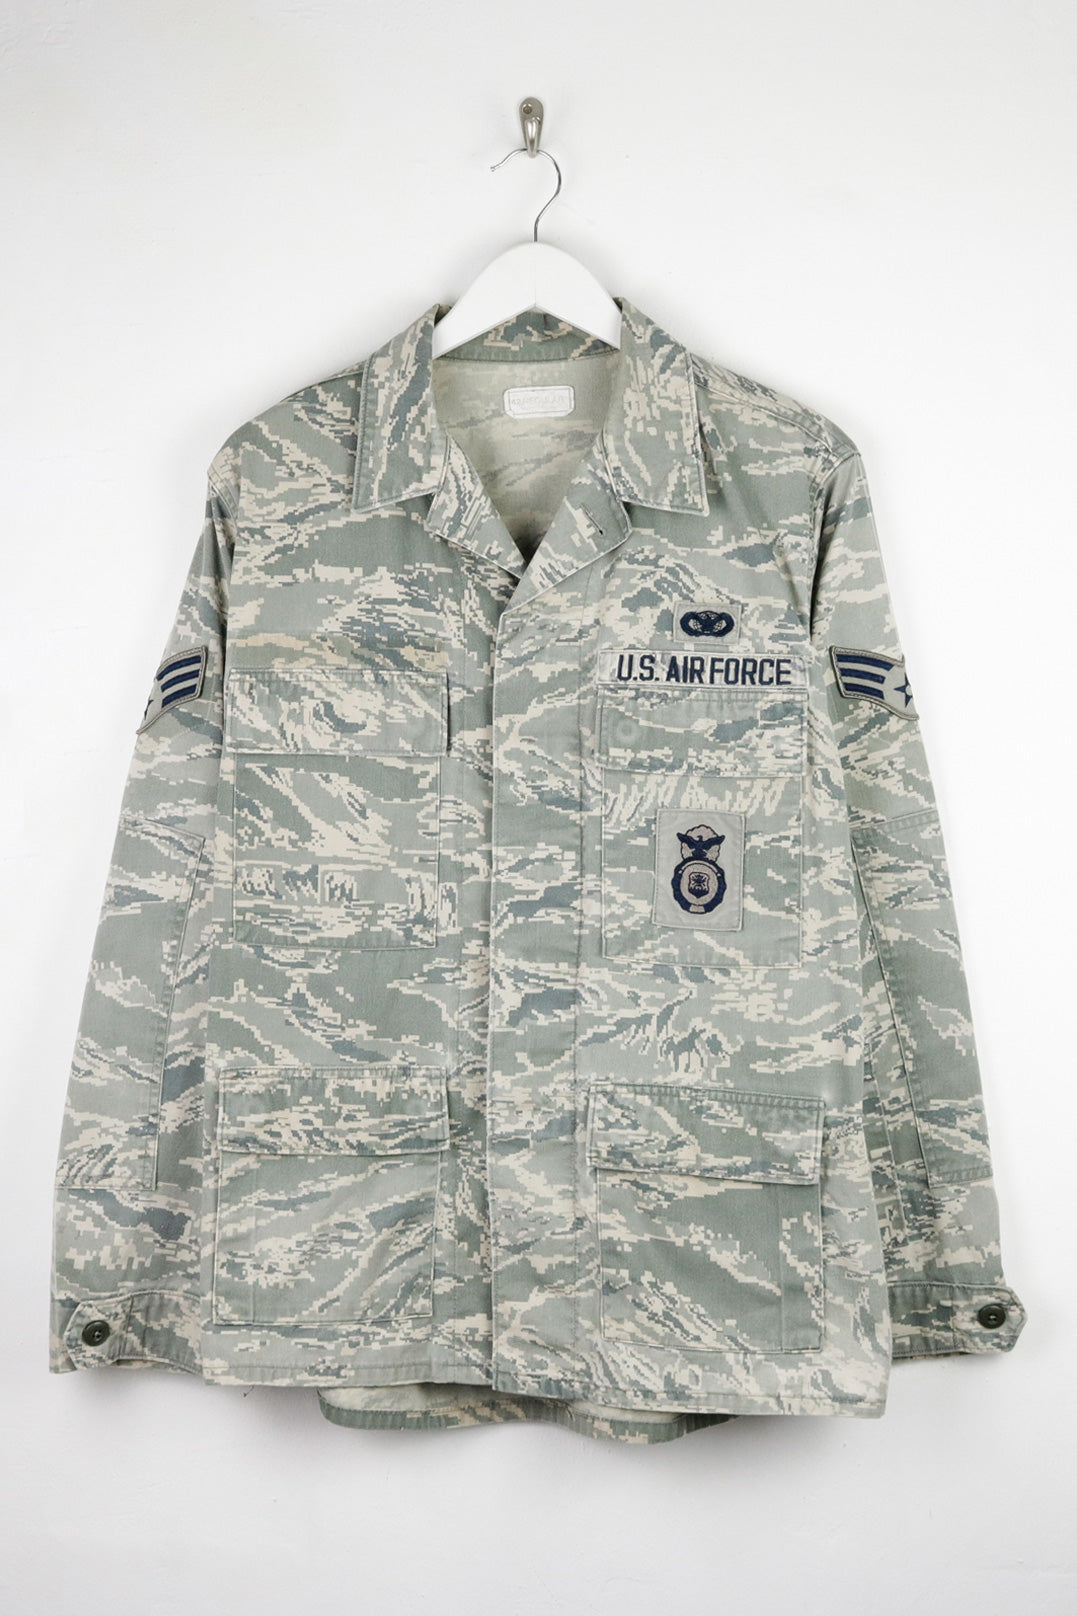 U.S Air Force